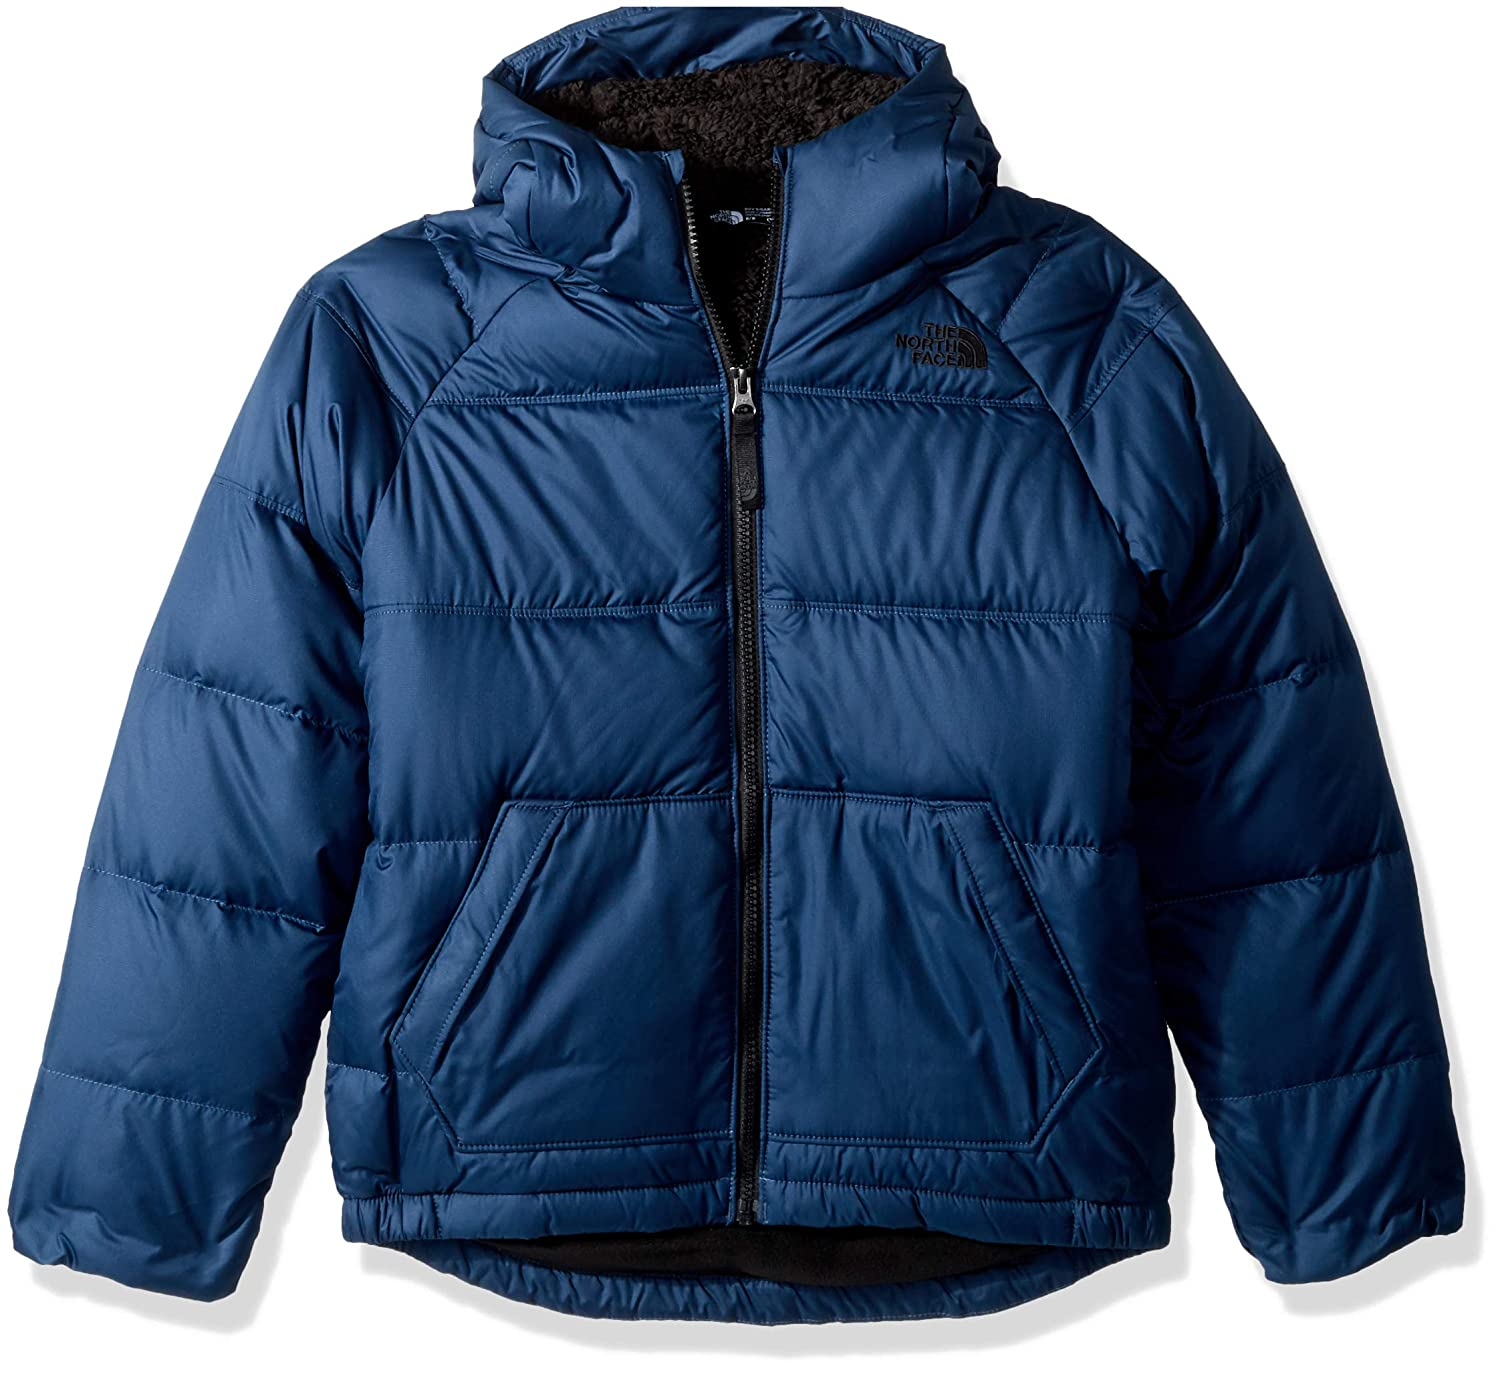 The North Face OUTERWEAR ボーイズ US サイズ: X-Large カラー: ブルー